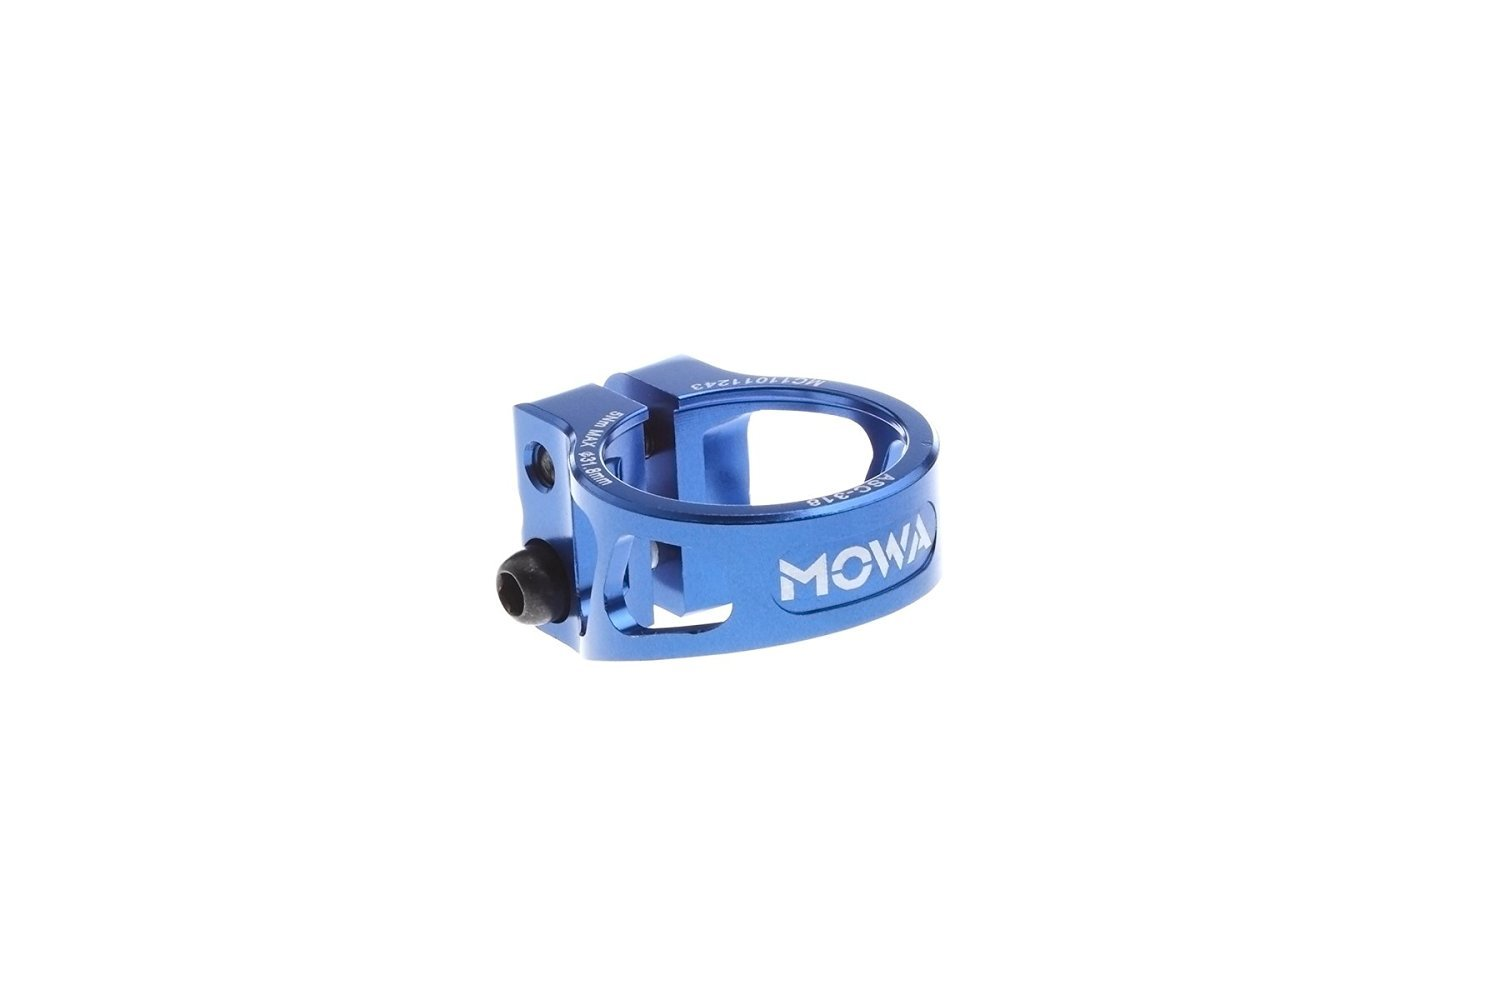 MOWA ASC Road Cyclocross CX Mountain Bicycle MTB Bike Cycling Alloy Seatpost Clamp 31.8 and 34.9 (Blue, 31.8mm) by MOWA